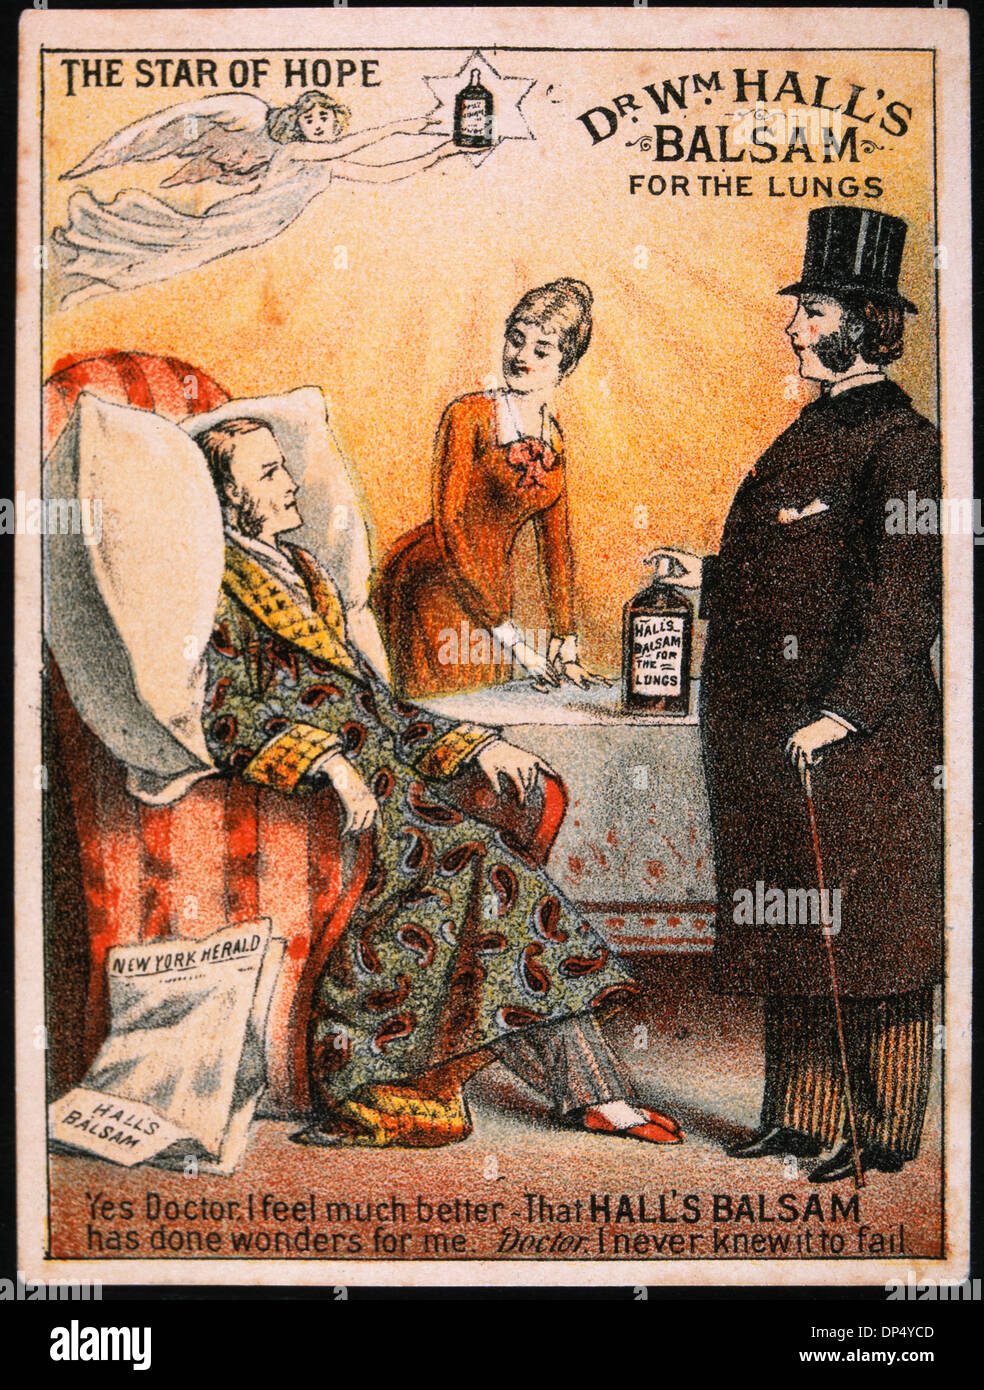 Male Patient Being Treated By Doctor Dr Wm Halls Balsam For The Lungs Vintage Trade Card Circa 1900